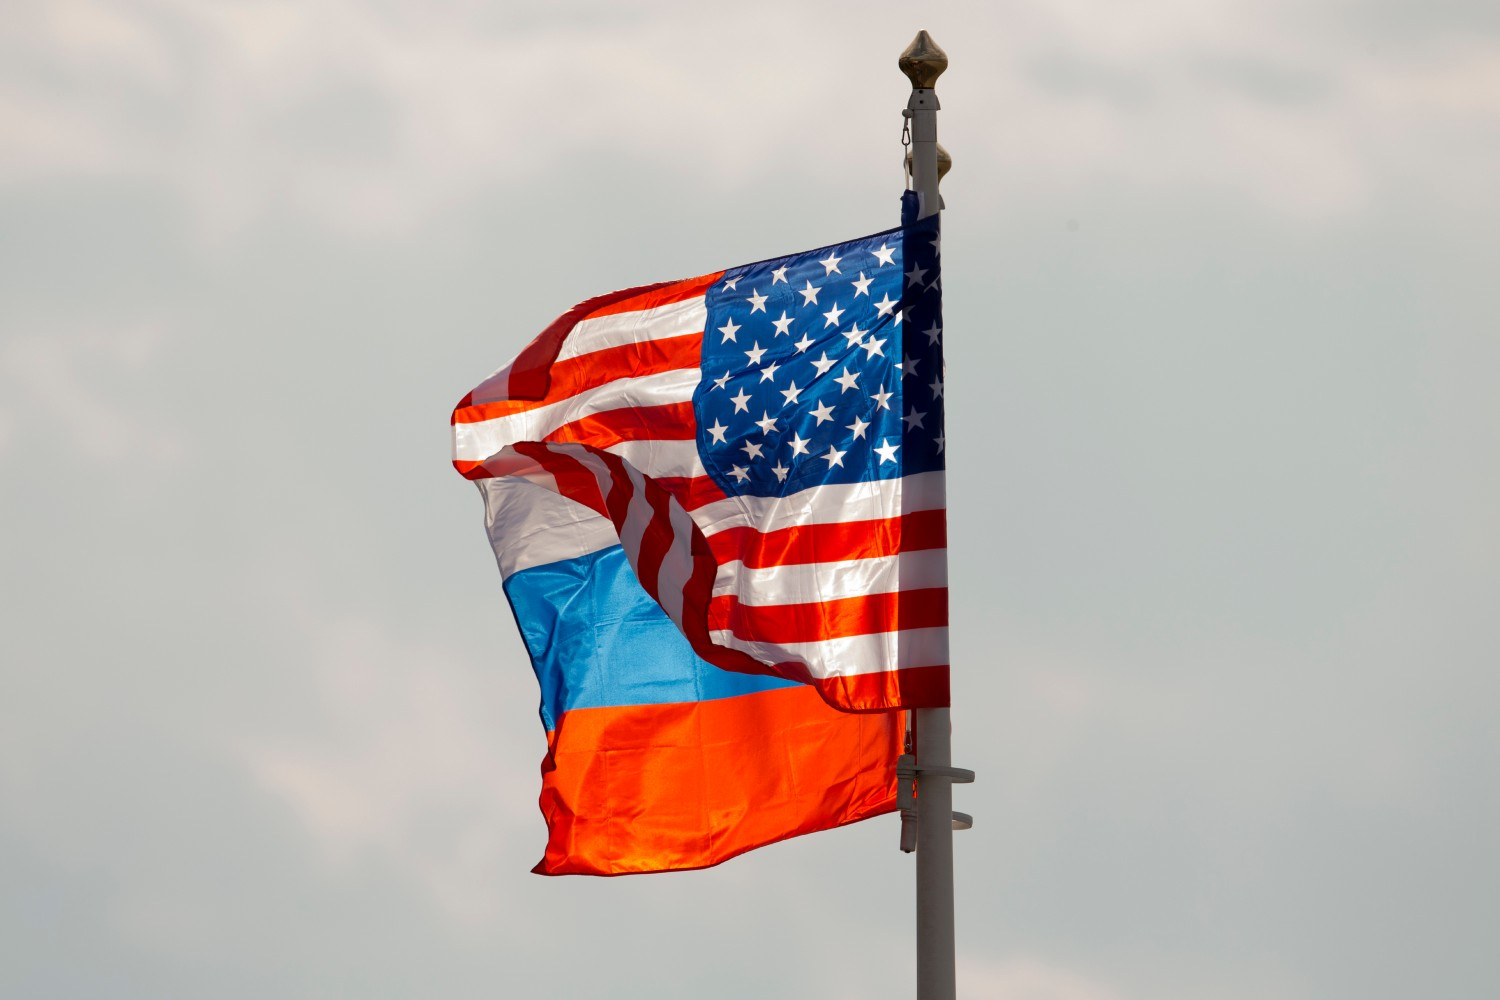 """FILE - in this Tuesday, April 11, 2017 file photo U.S. and Russian national flags wave on the wind before US Secretary of State Rex Tillerson's arrival in Moscow's Vnukovo airport, Russia. Russia on Friday, Sept. 1, 2017 promised a """"tough response"""" after U.S. issued its order to shut the Russian Consulate in San Francisco and offices in Washington and New York and gave Russia 48 hours to comply, intensifying tensions between the two countries. (AP Photo/ Ivan Sekretarev, file)"""